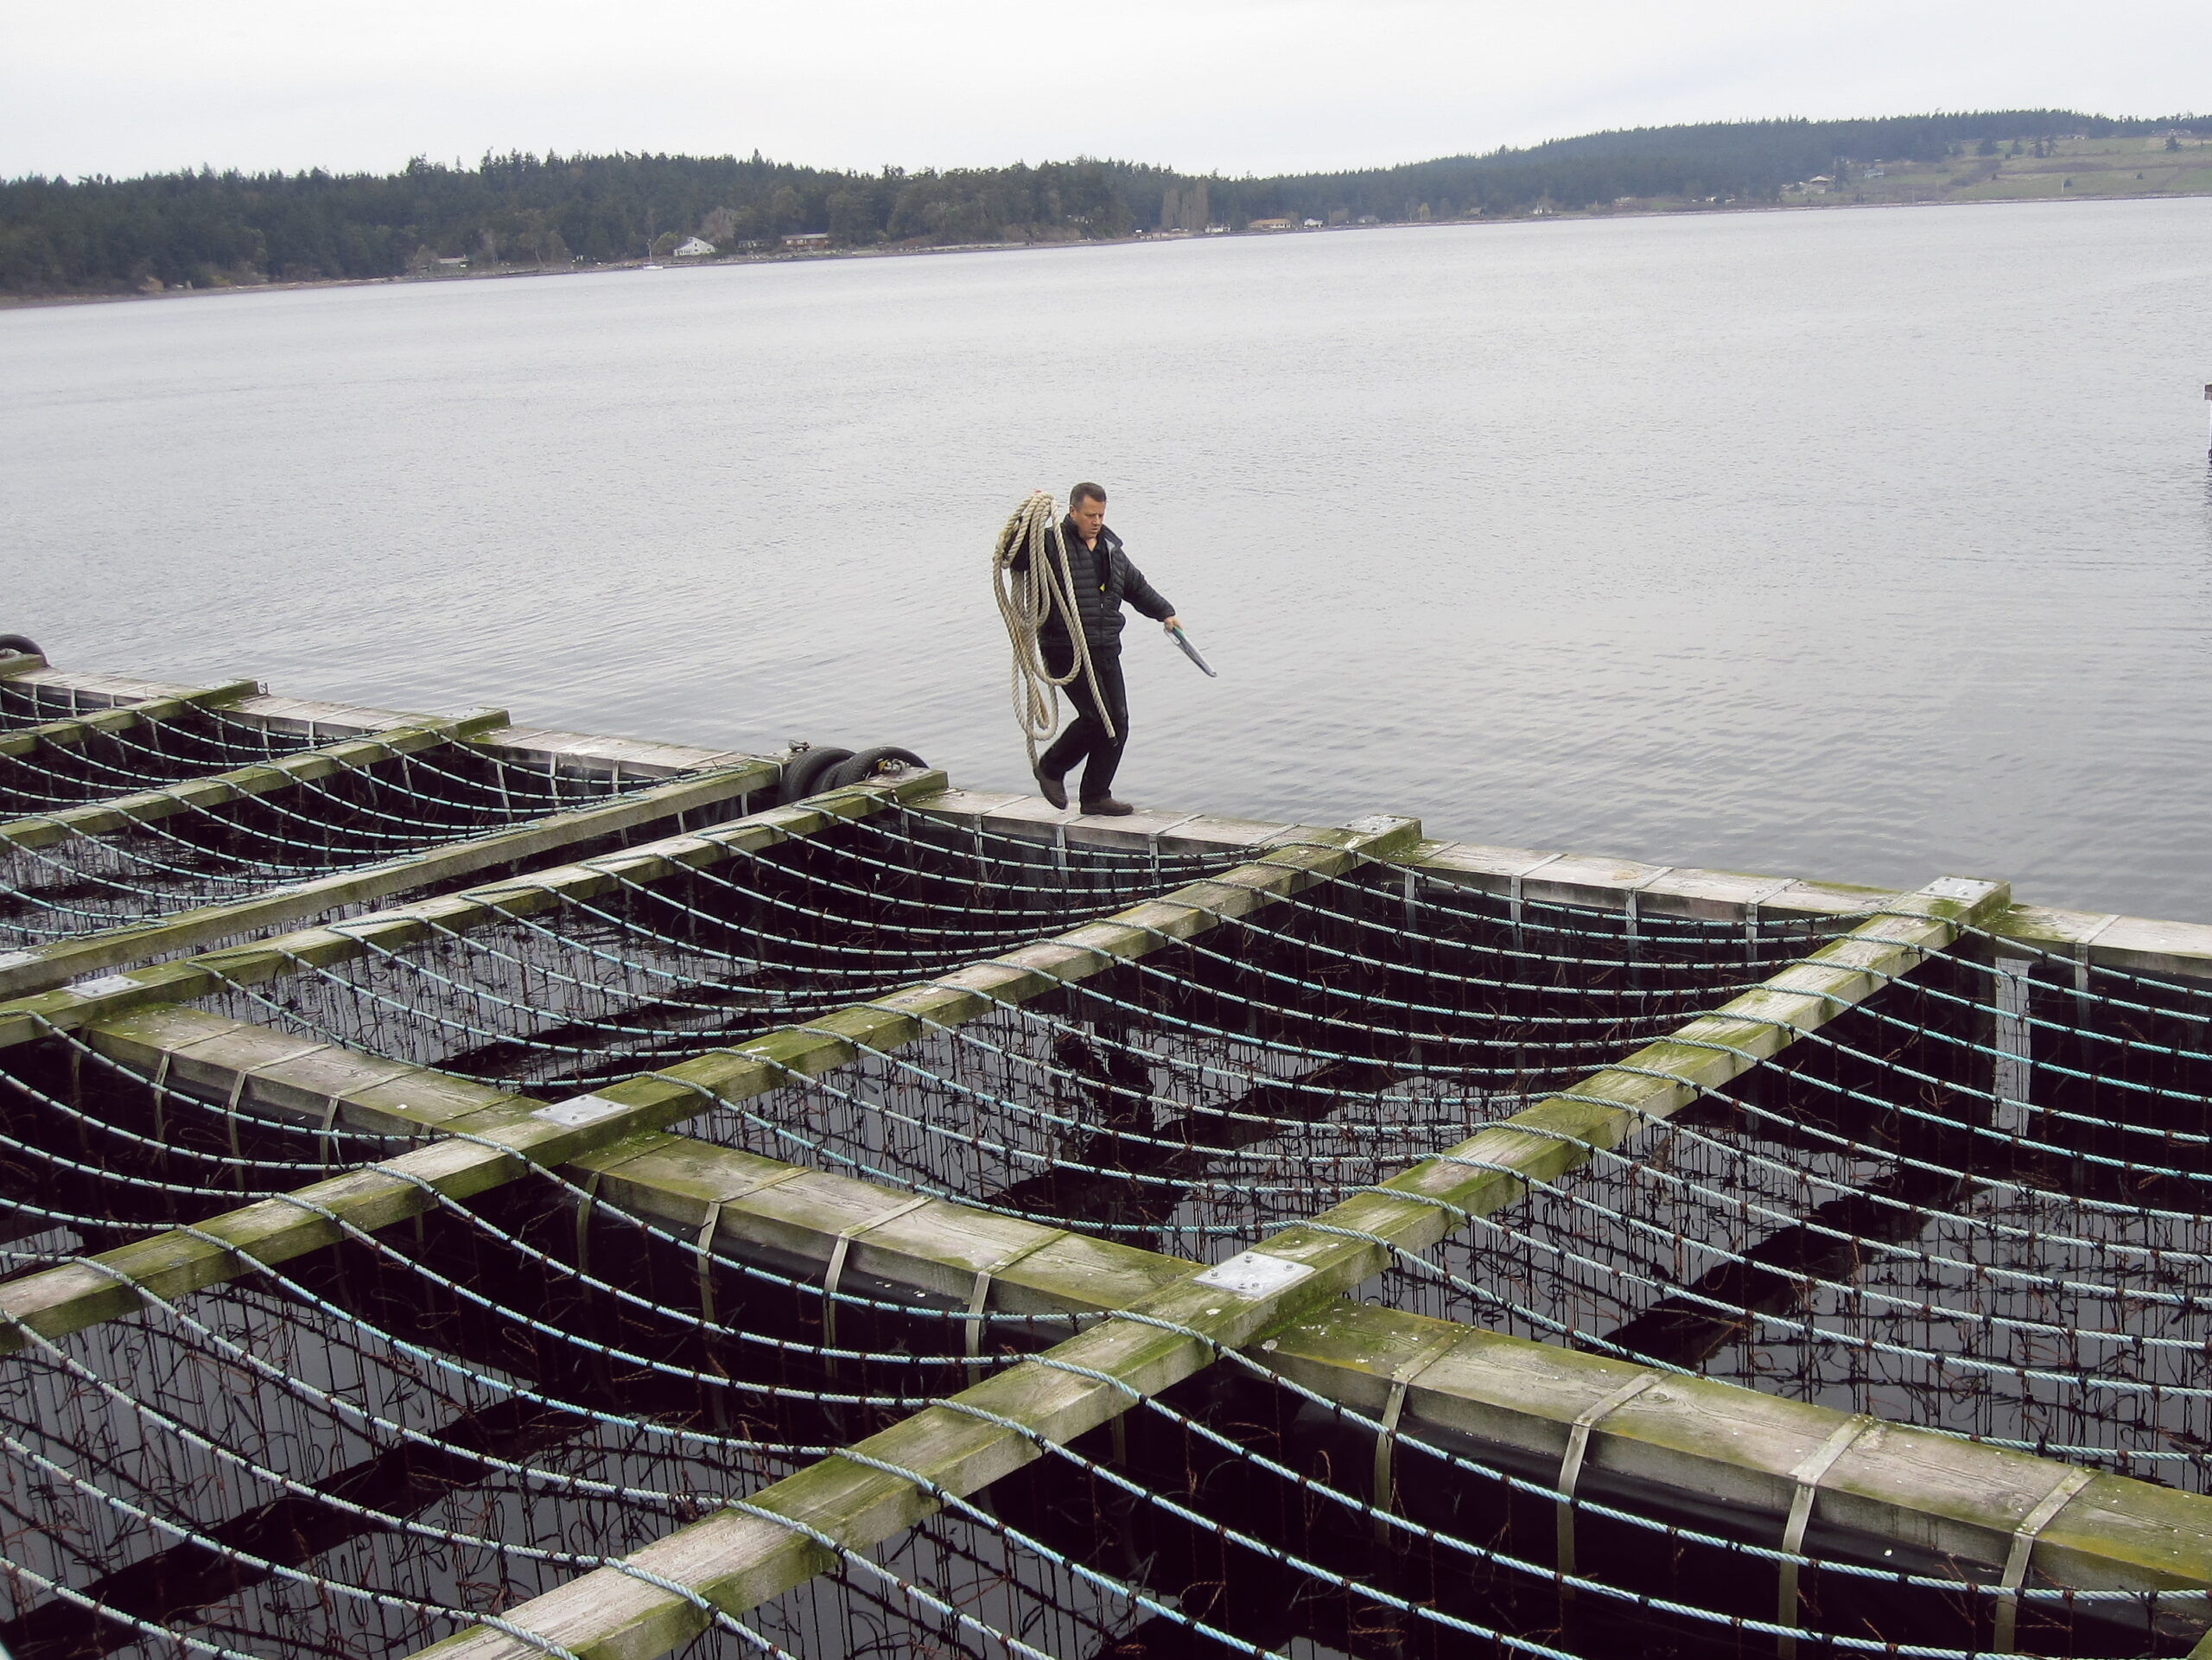 Sea-farming our way to a better future